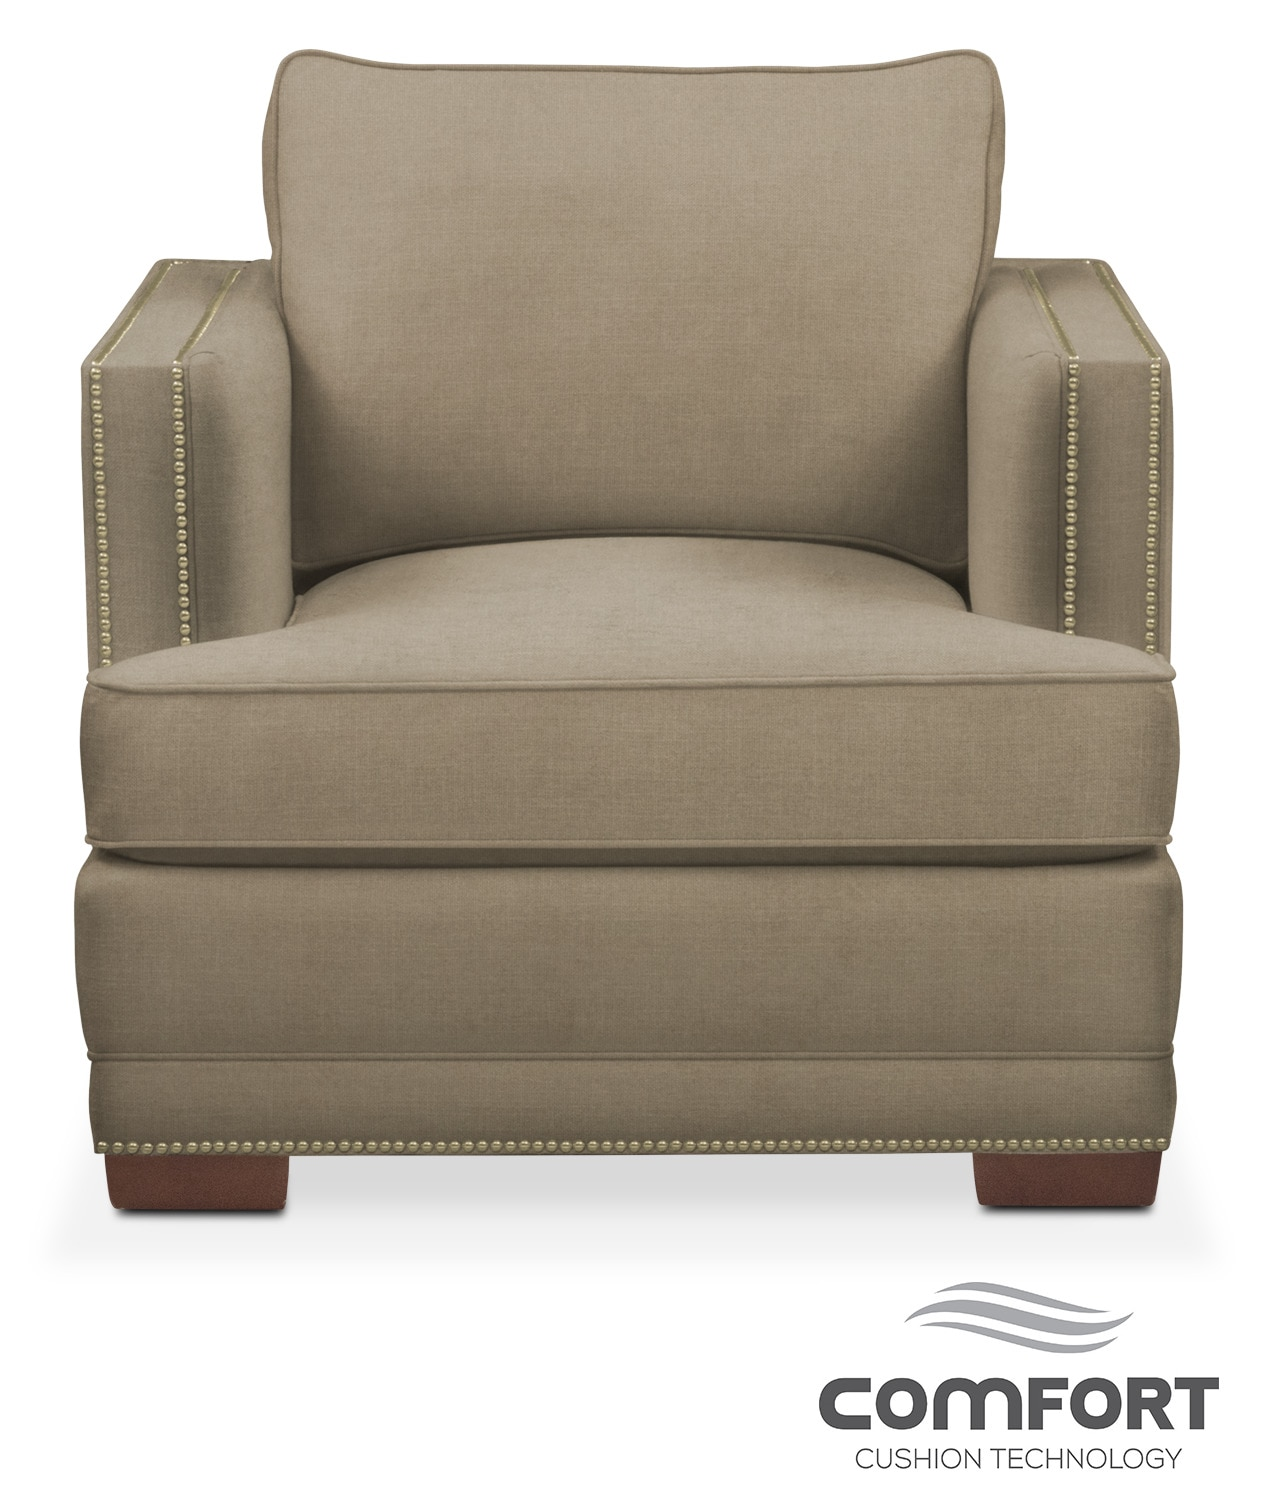 Arden comfort chair stately l mondo value city for Comfort living furniture